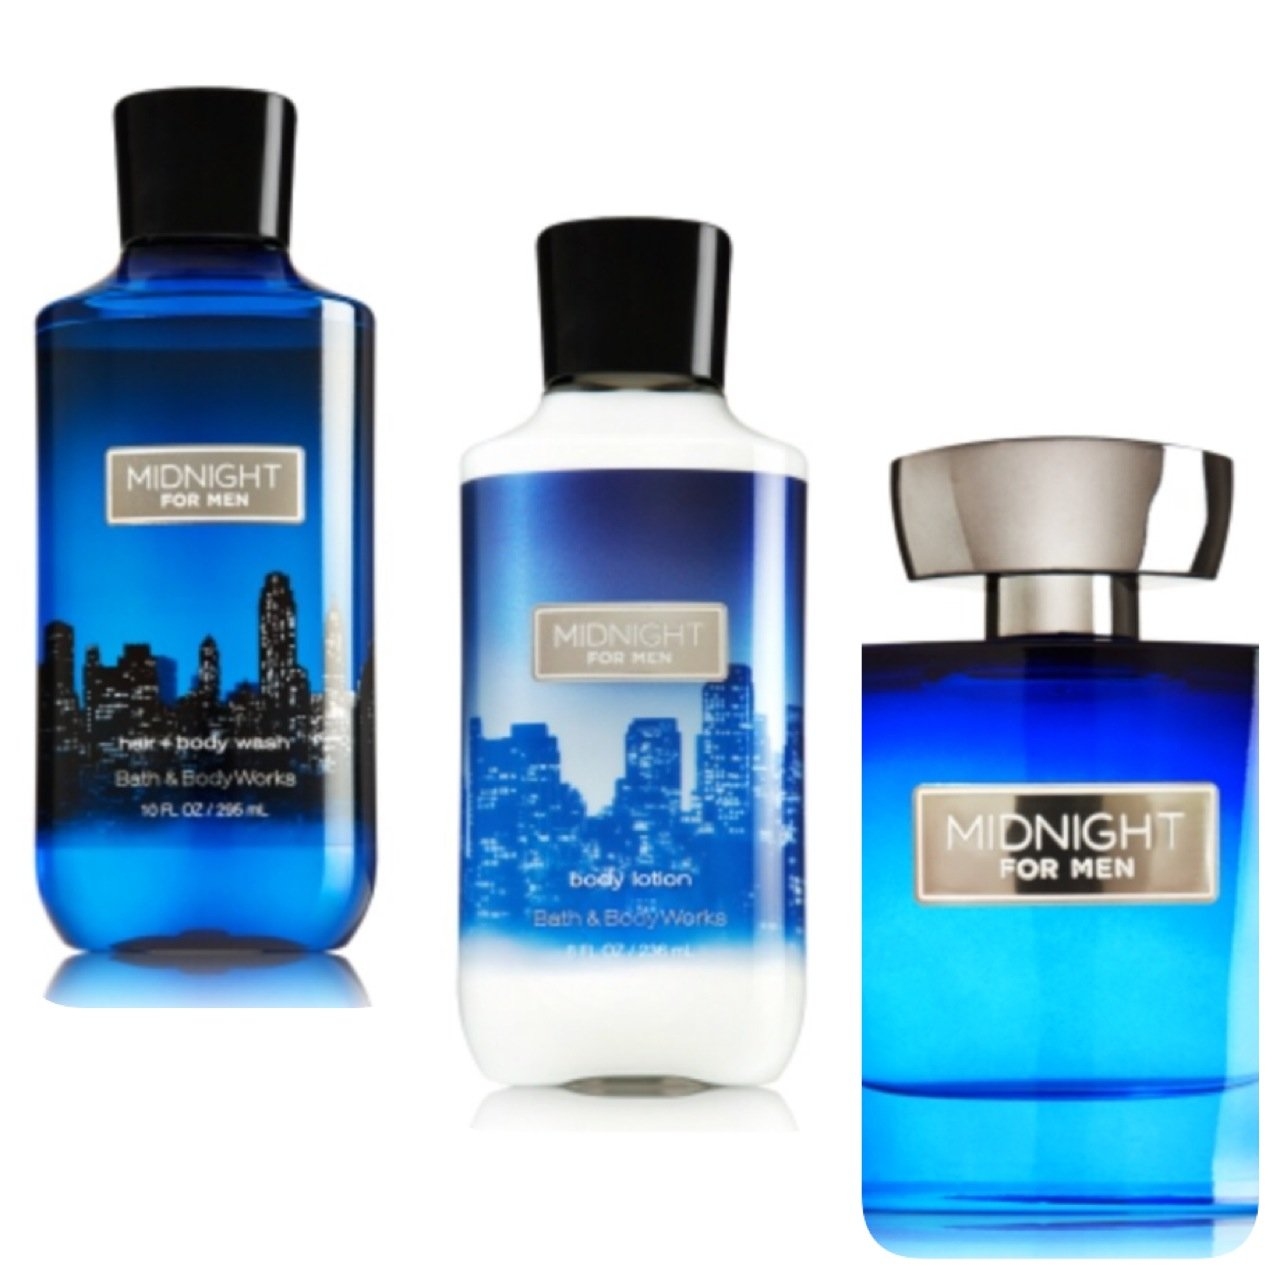 BATH AND BODY WORKS,MIDNIGHT FOR MEN GIFT SET,LOTION,BODY WASH,COLOGNE SPRAY.